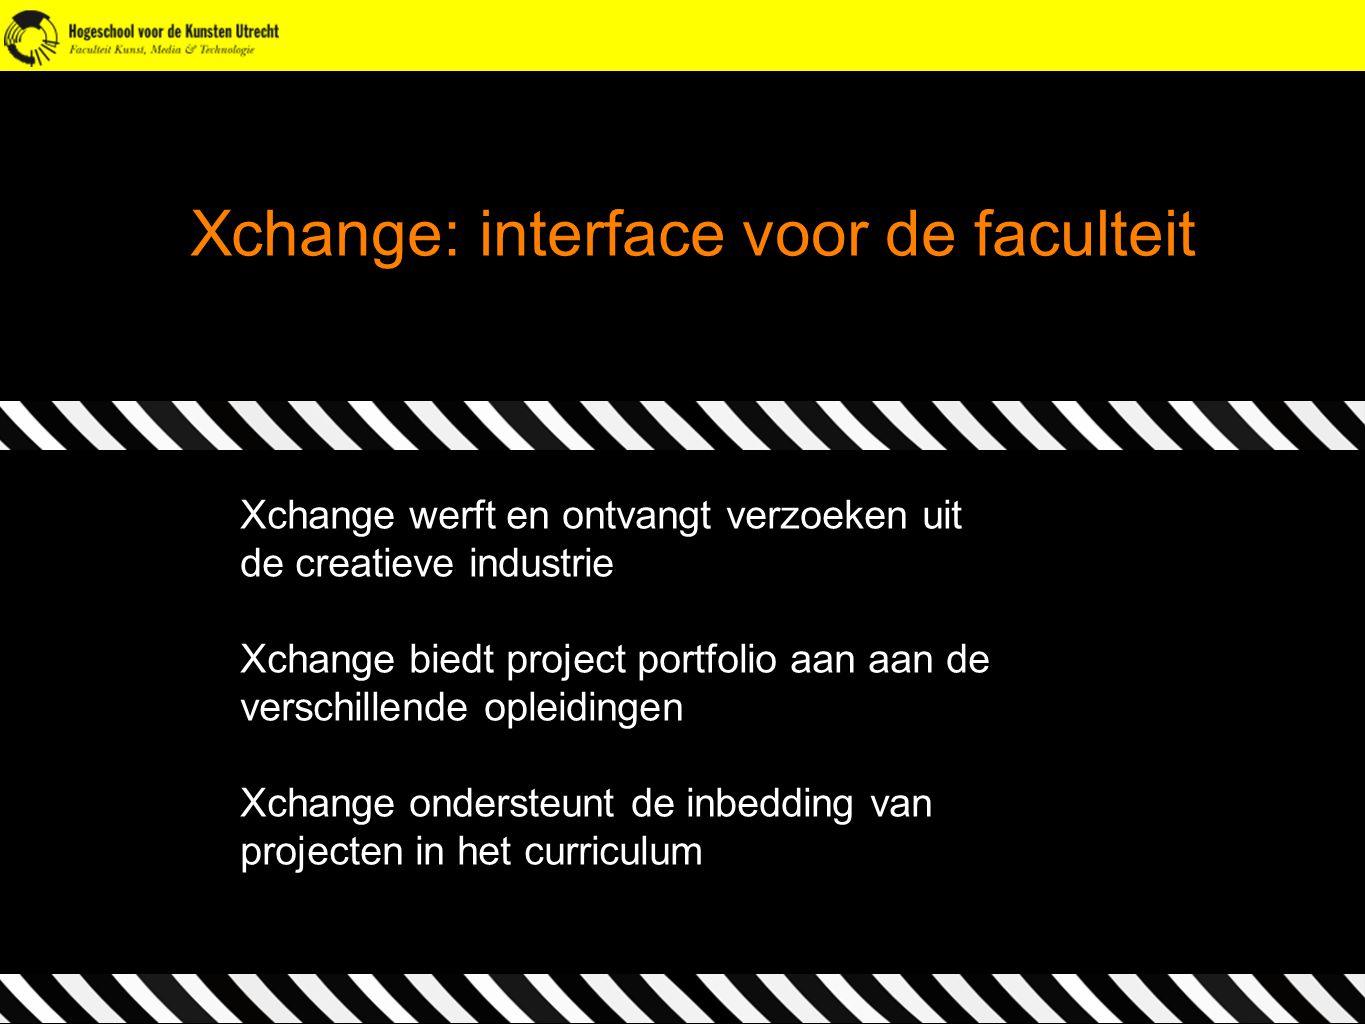 Xchange: interface voor de faculteit